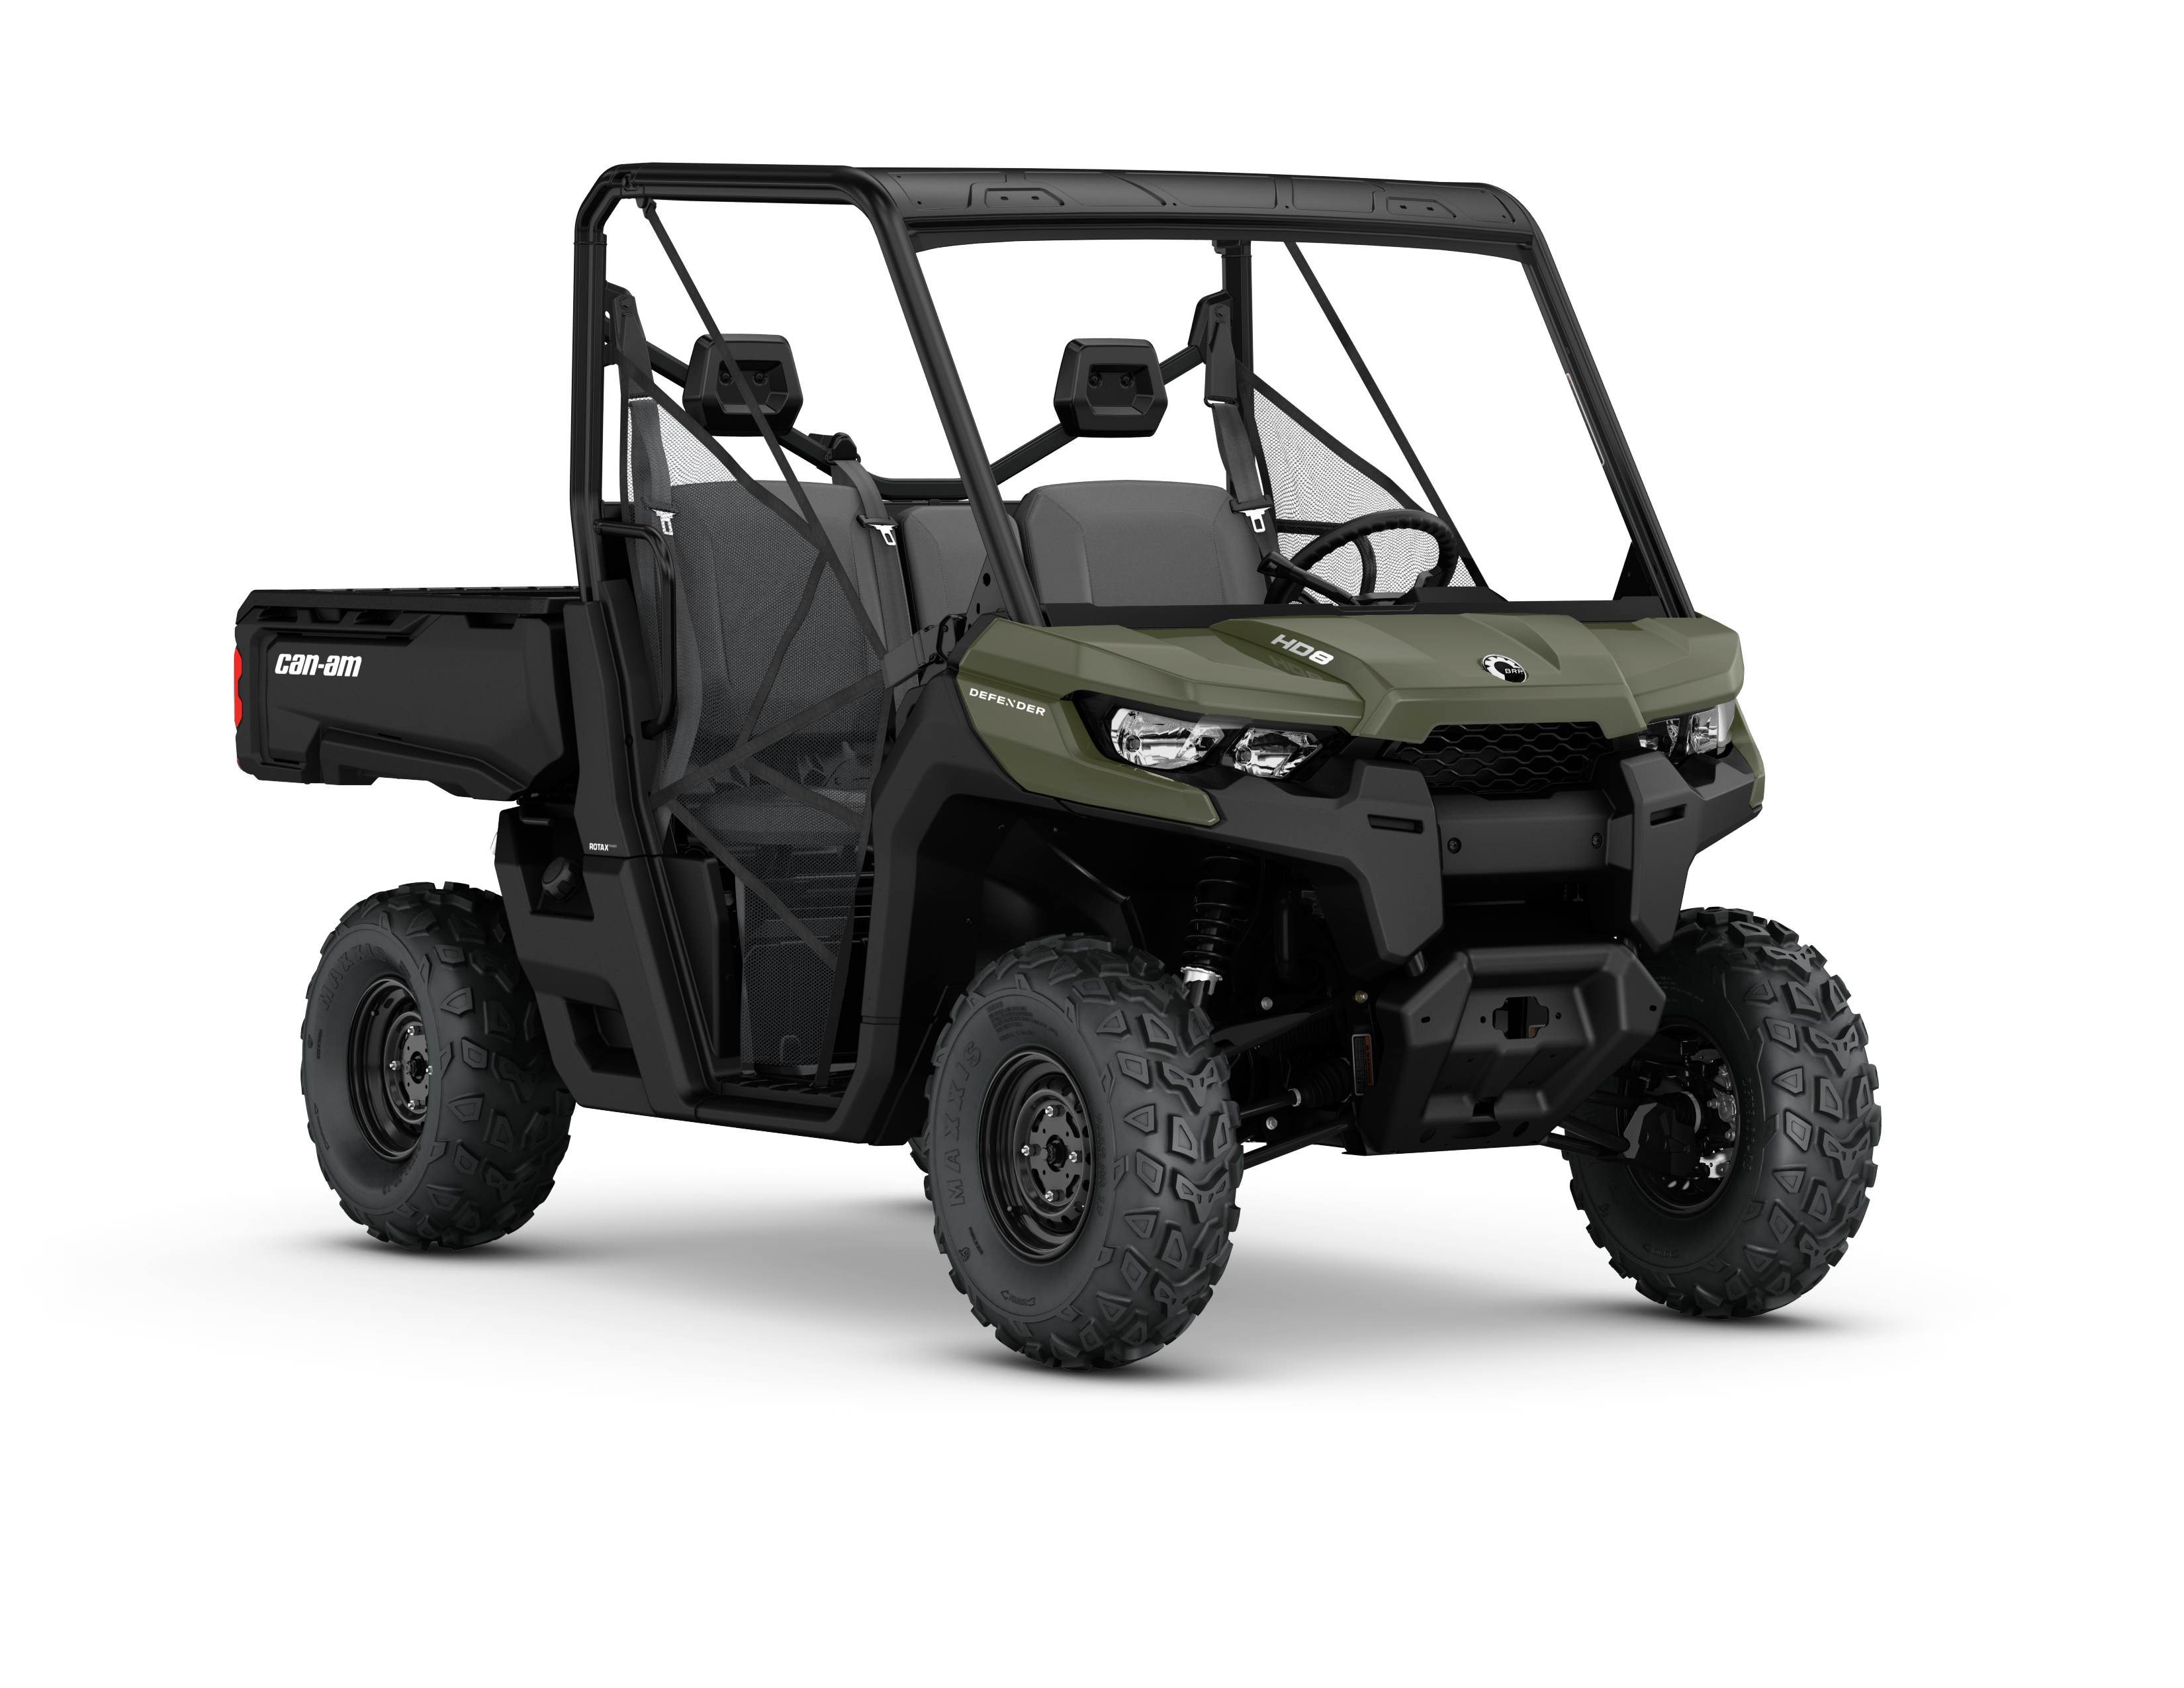 brp recalls side by side off road vehicles due to injury hazard recall alert. Black Bedroom Furniture Sets. Home Design Ideas